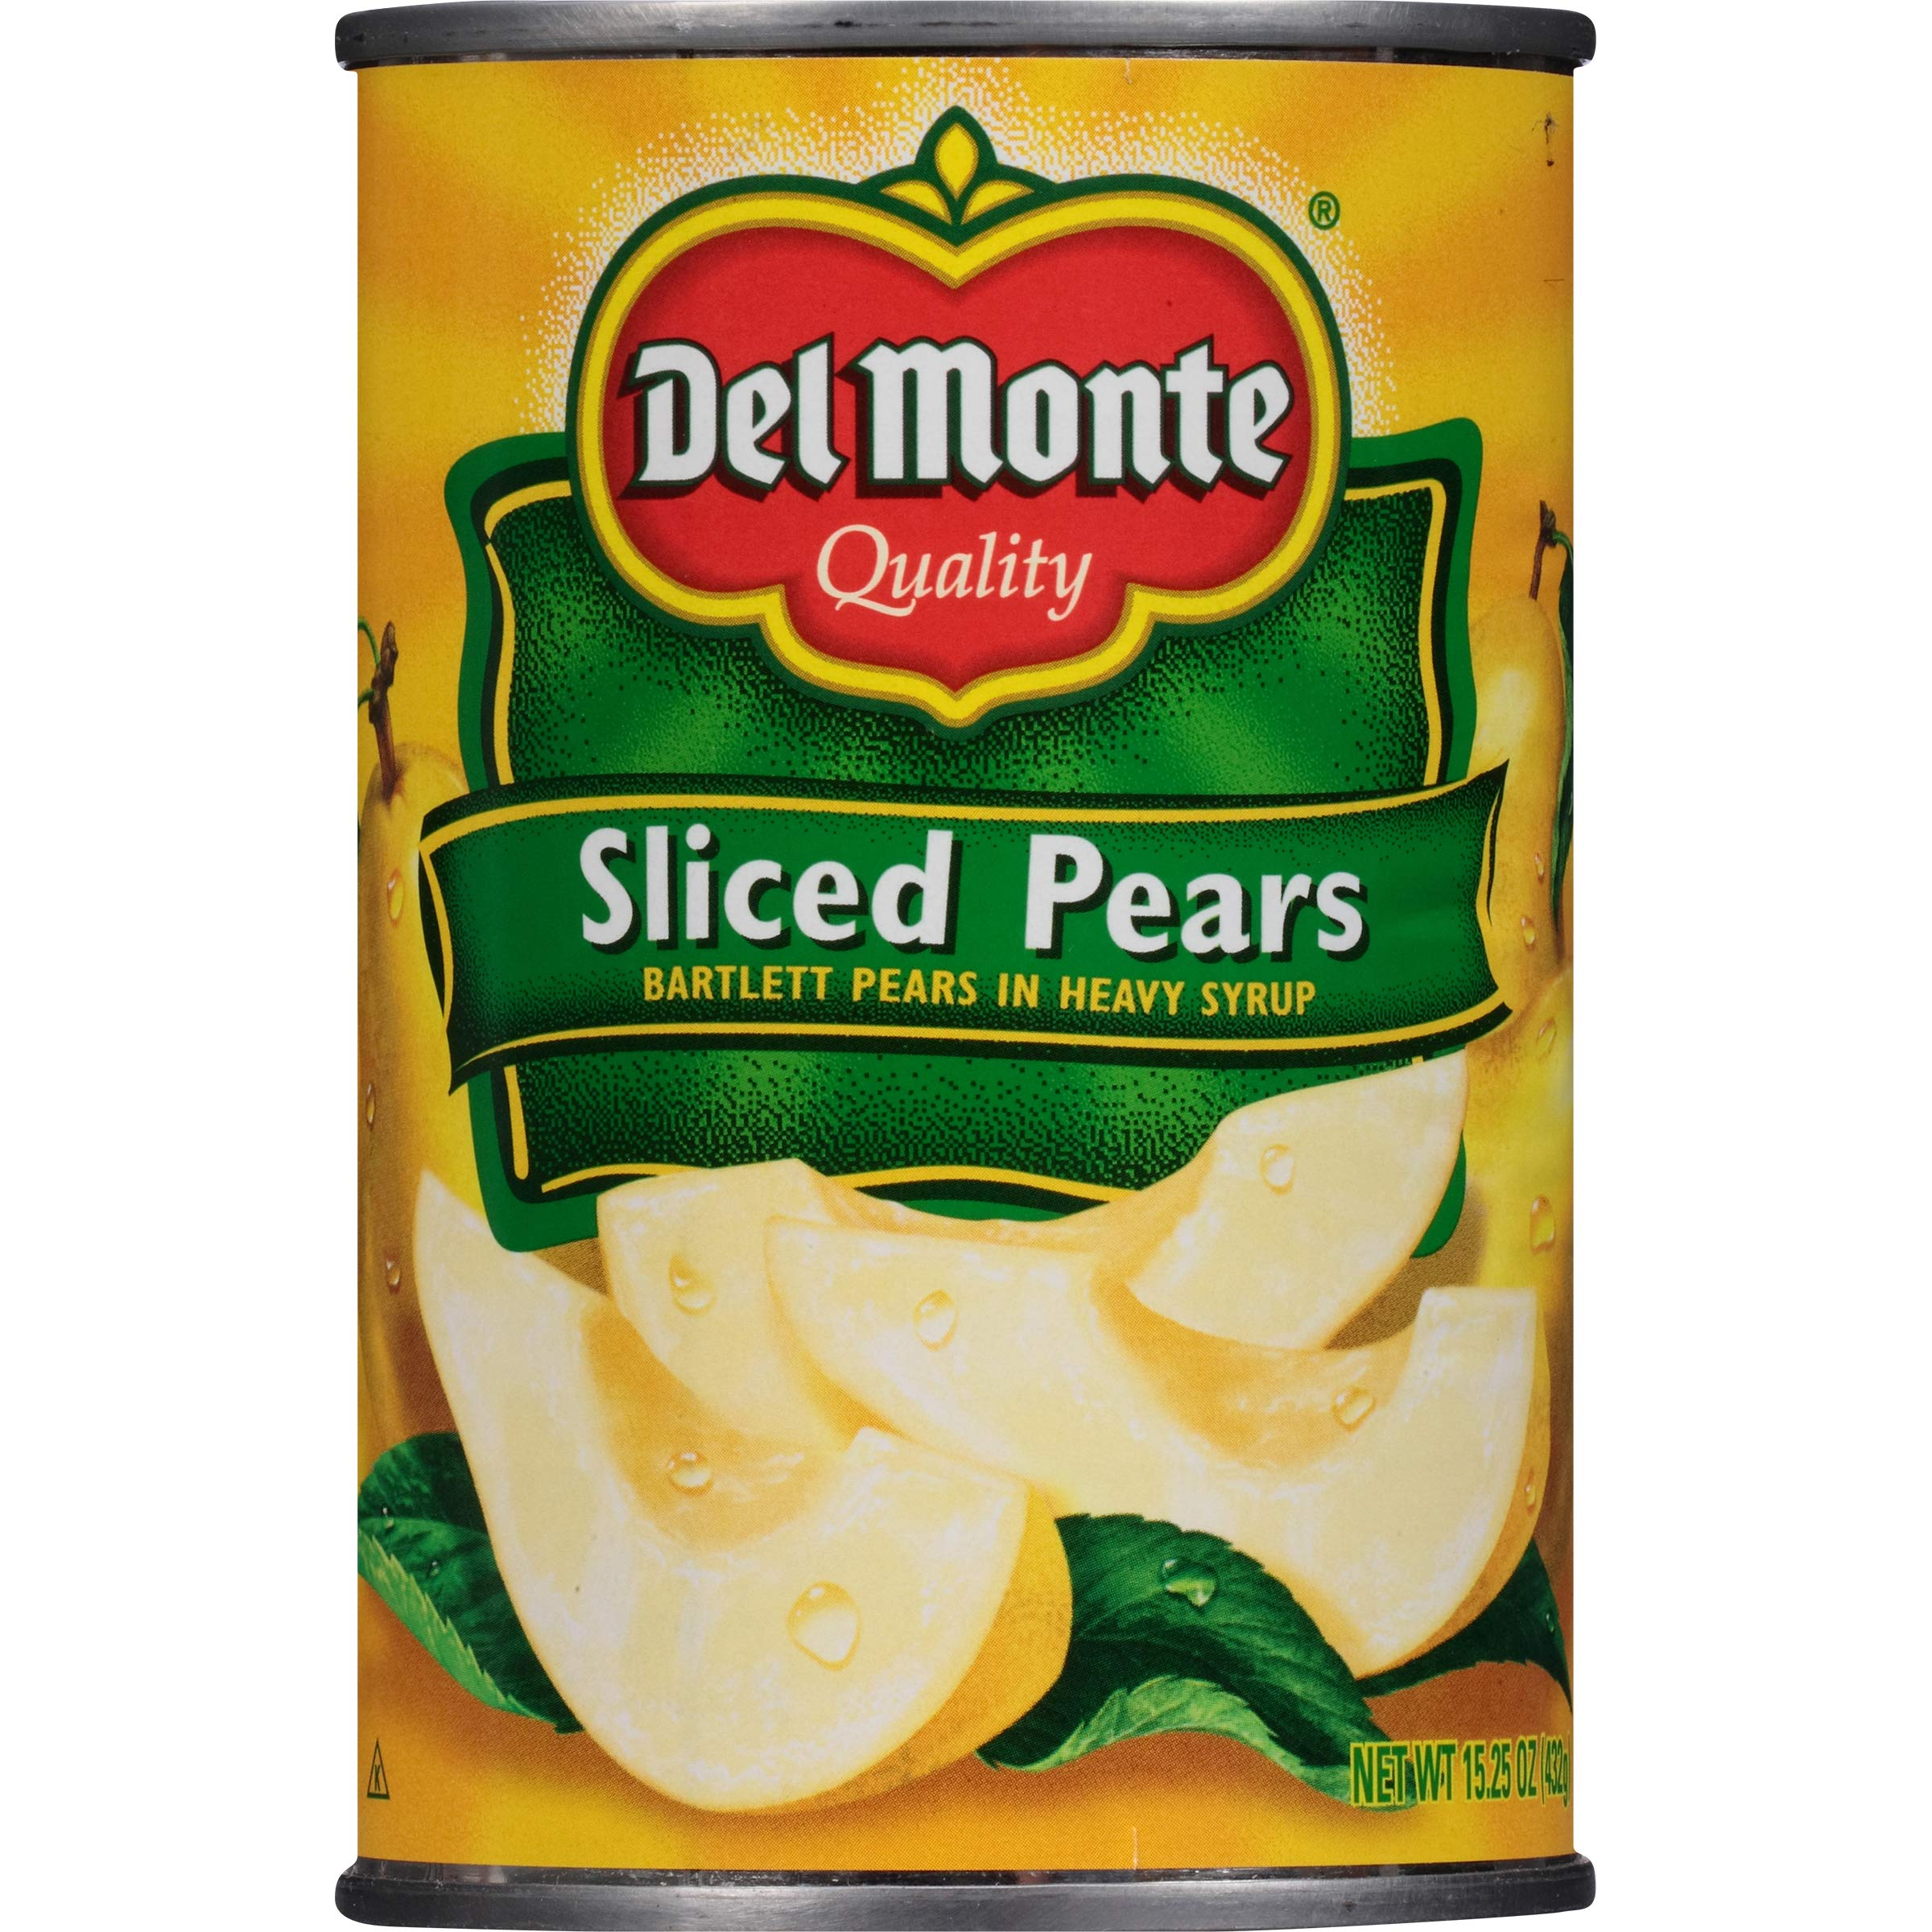 Del Monte Canned Bartlett Sliced Pears in Heavy Syrup, 15.25-Ounce (Pack of 12) by Del Monte